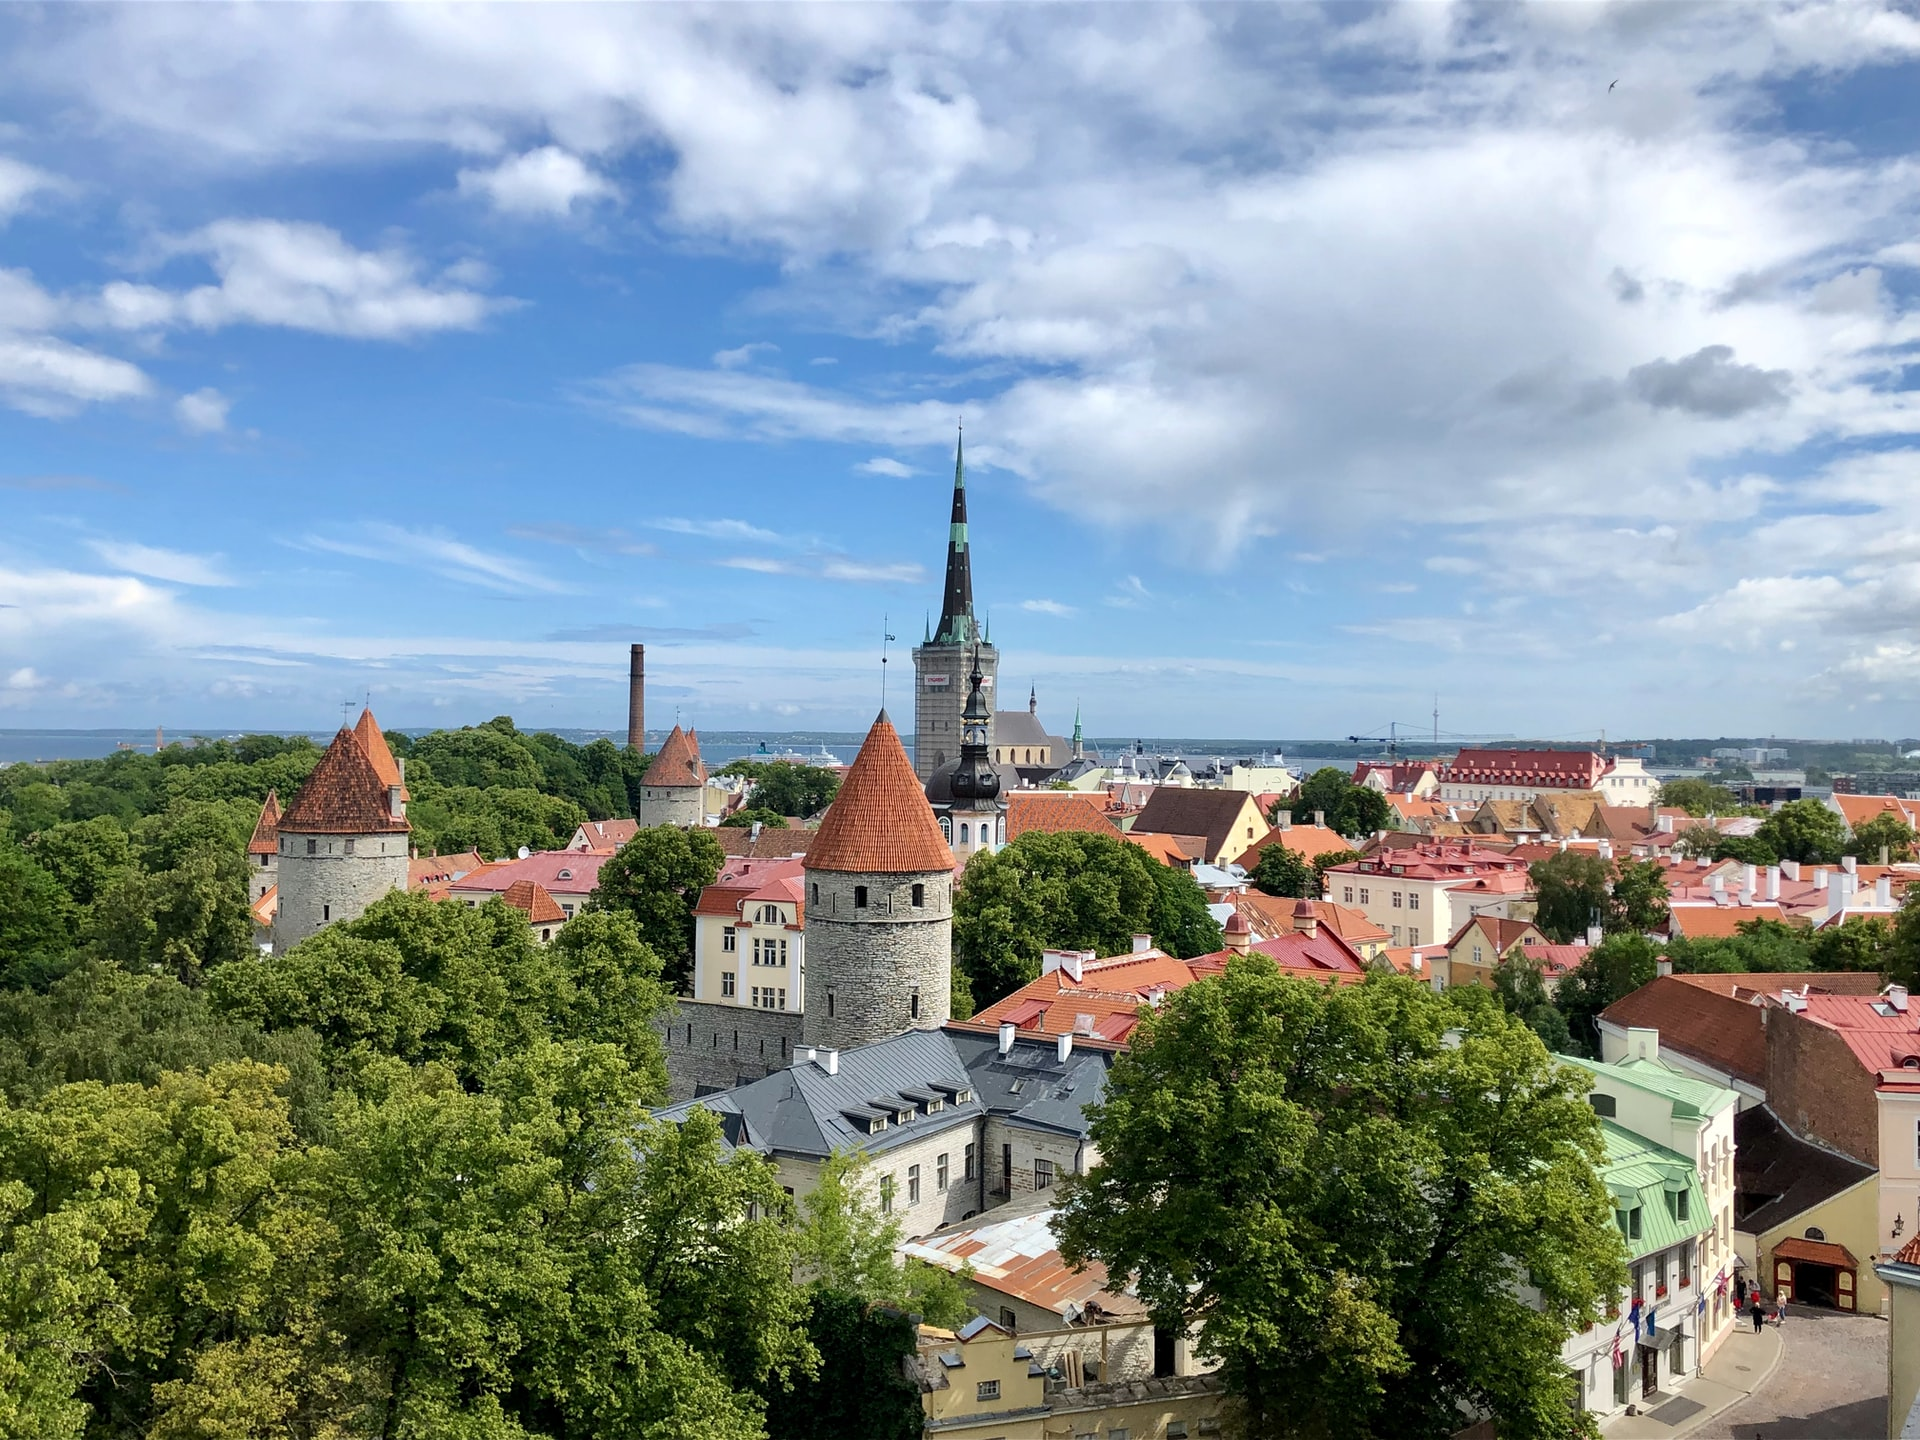 An image of Estonia